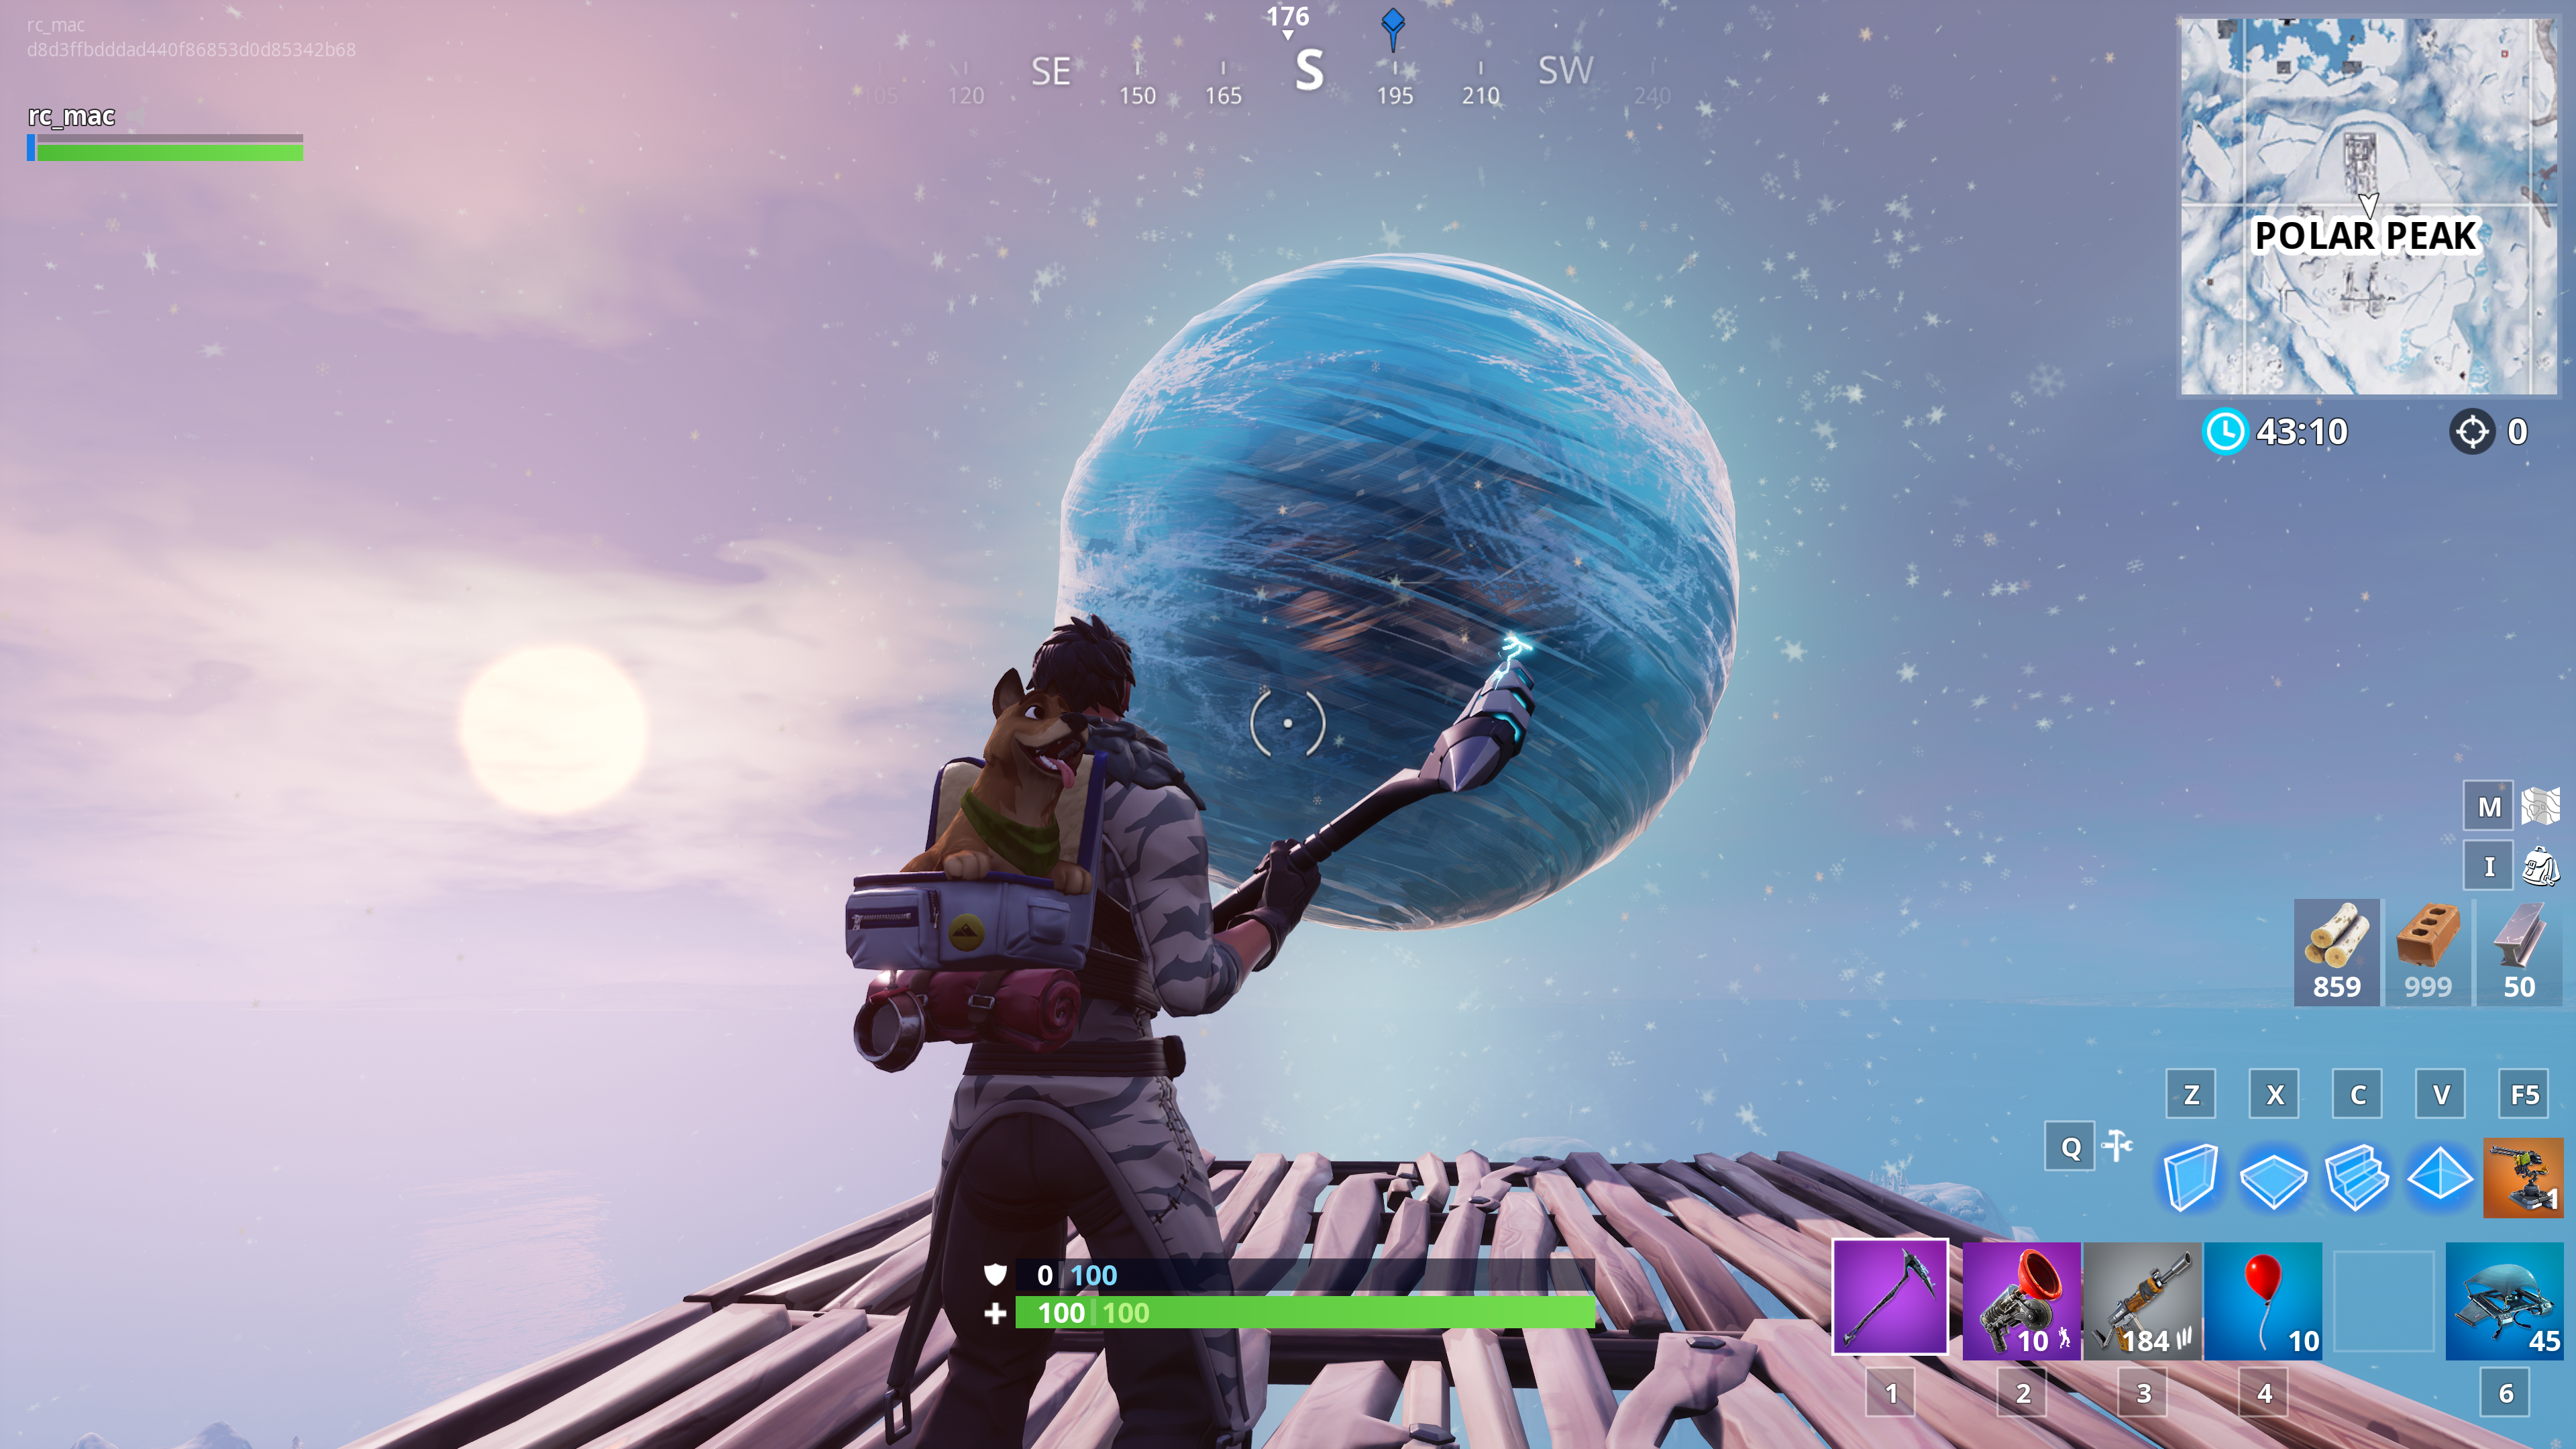 Fortnite's New Update Adds Some Ice-Related Mysteries